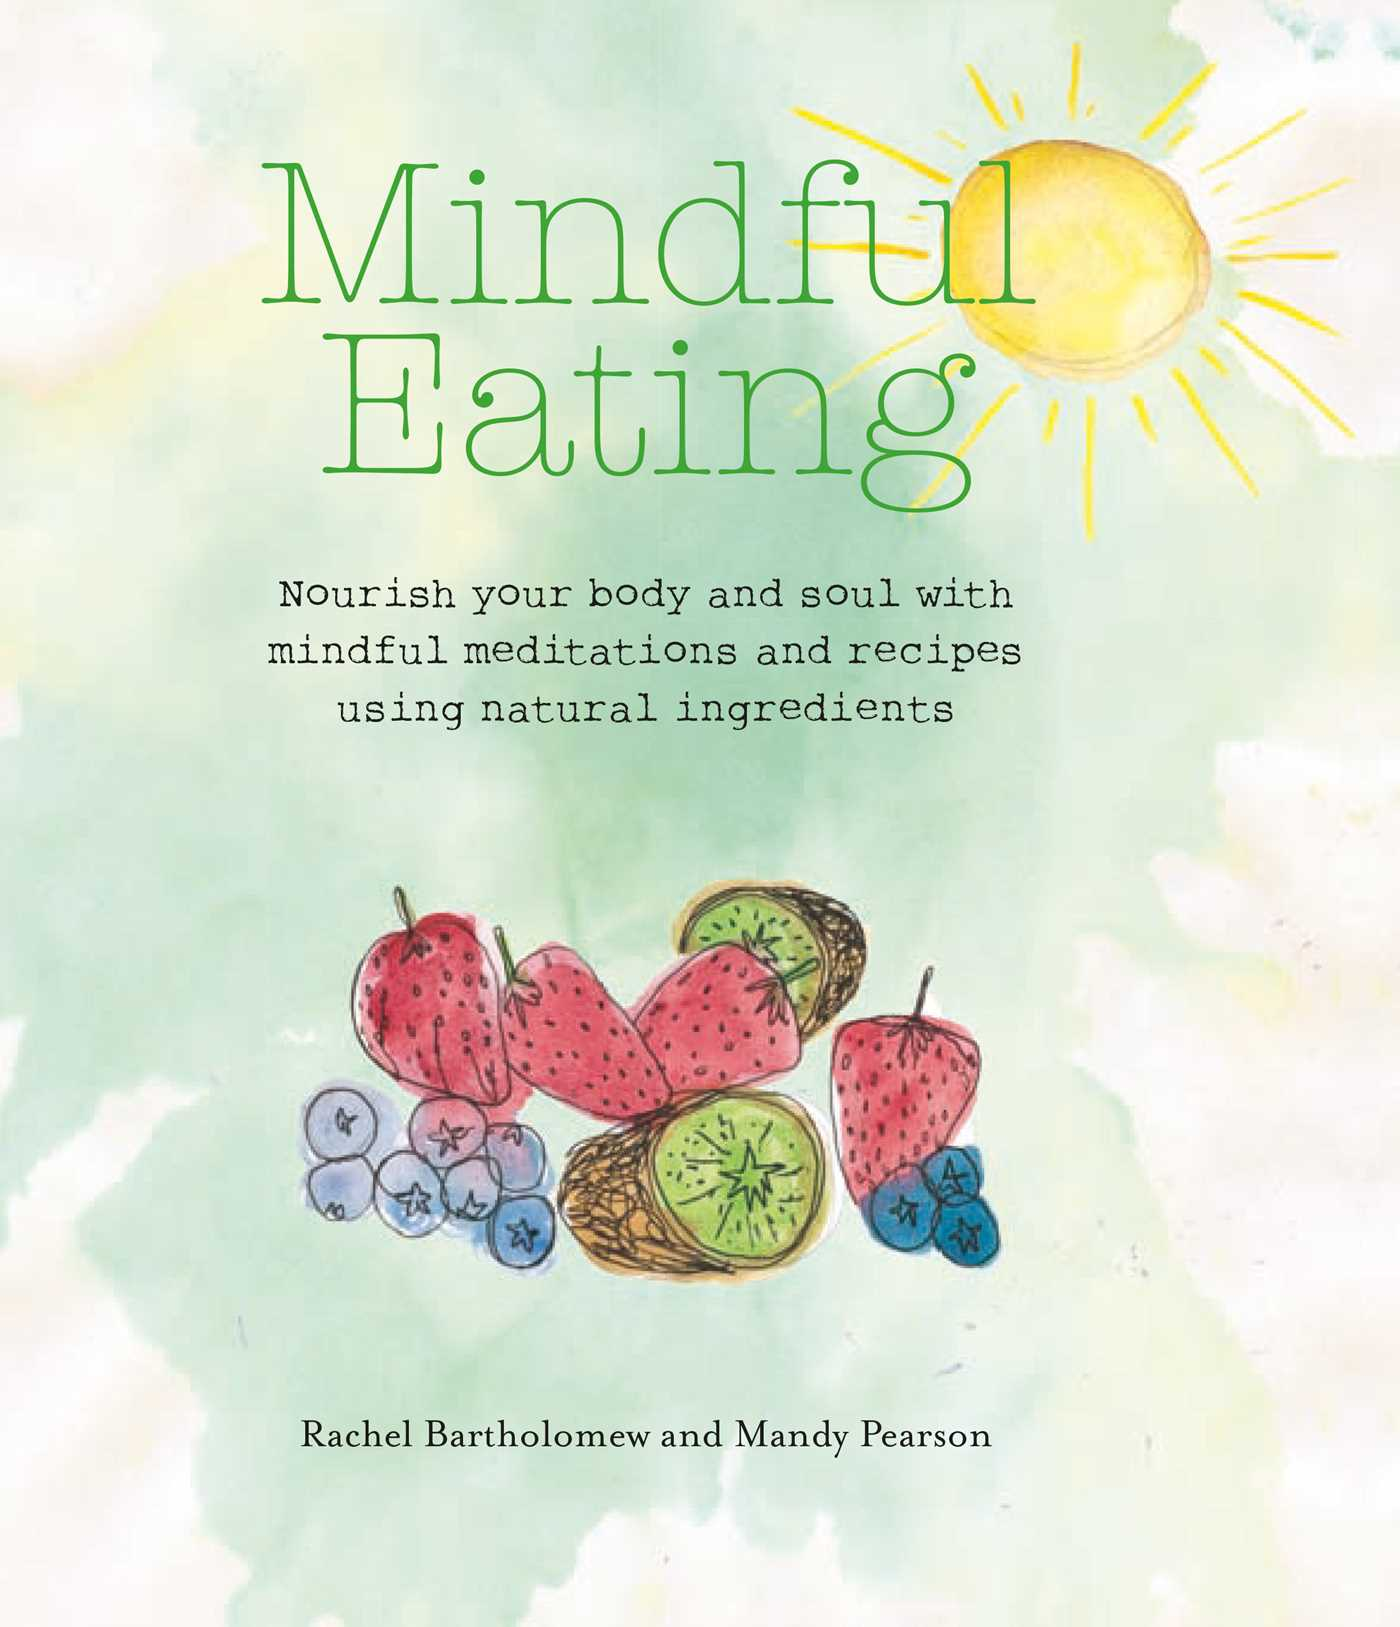 Mindful Eating Book By Rachel Bartholomew Mandy Pearson